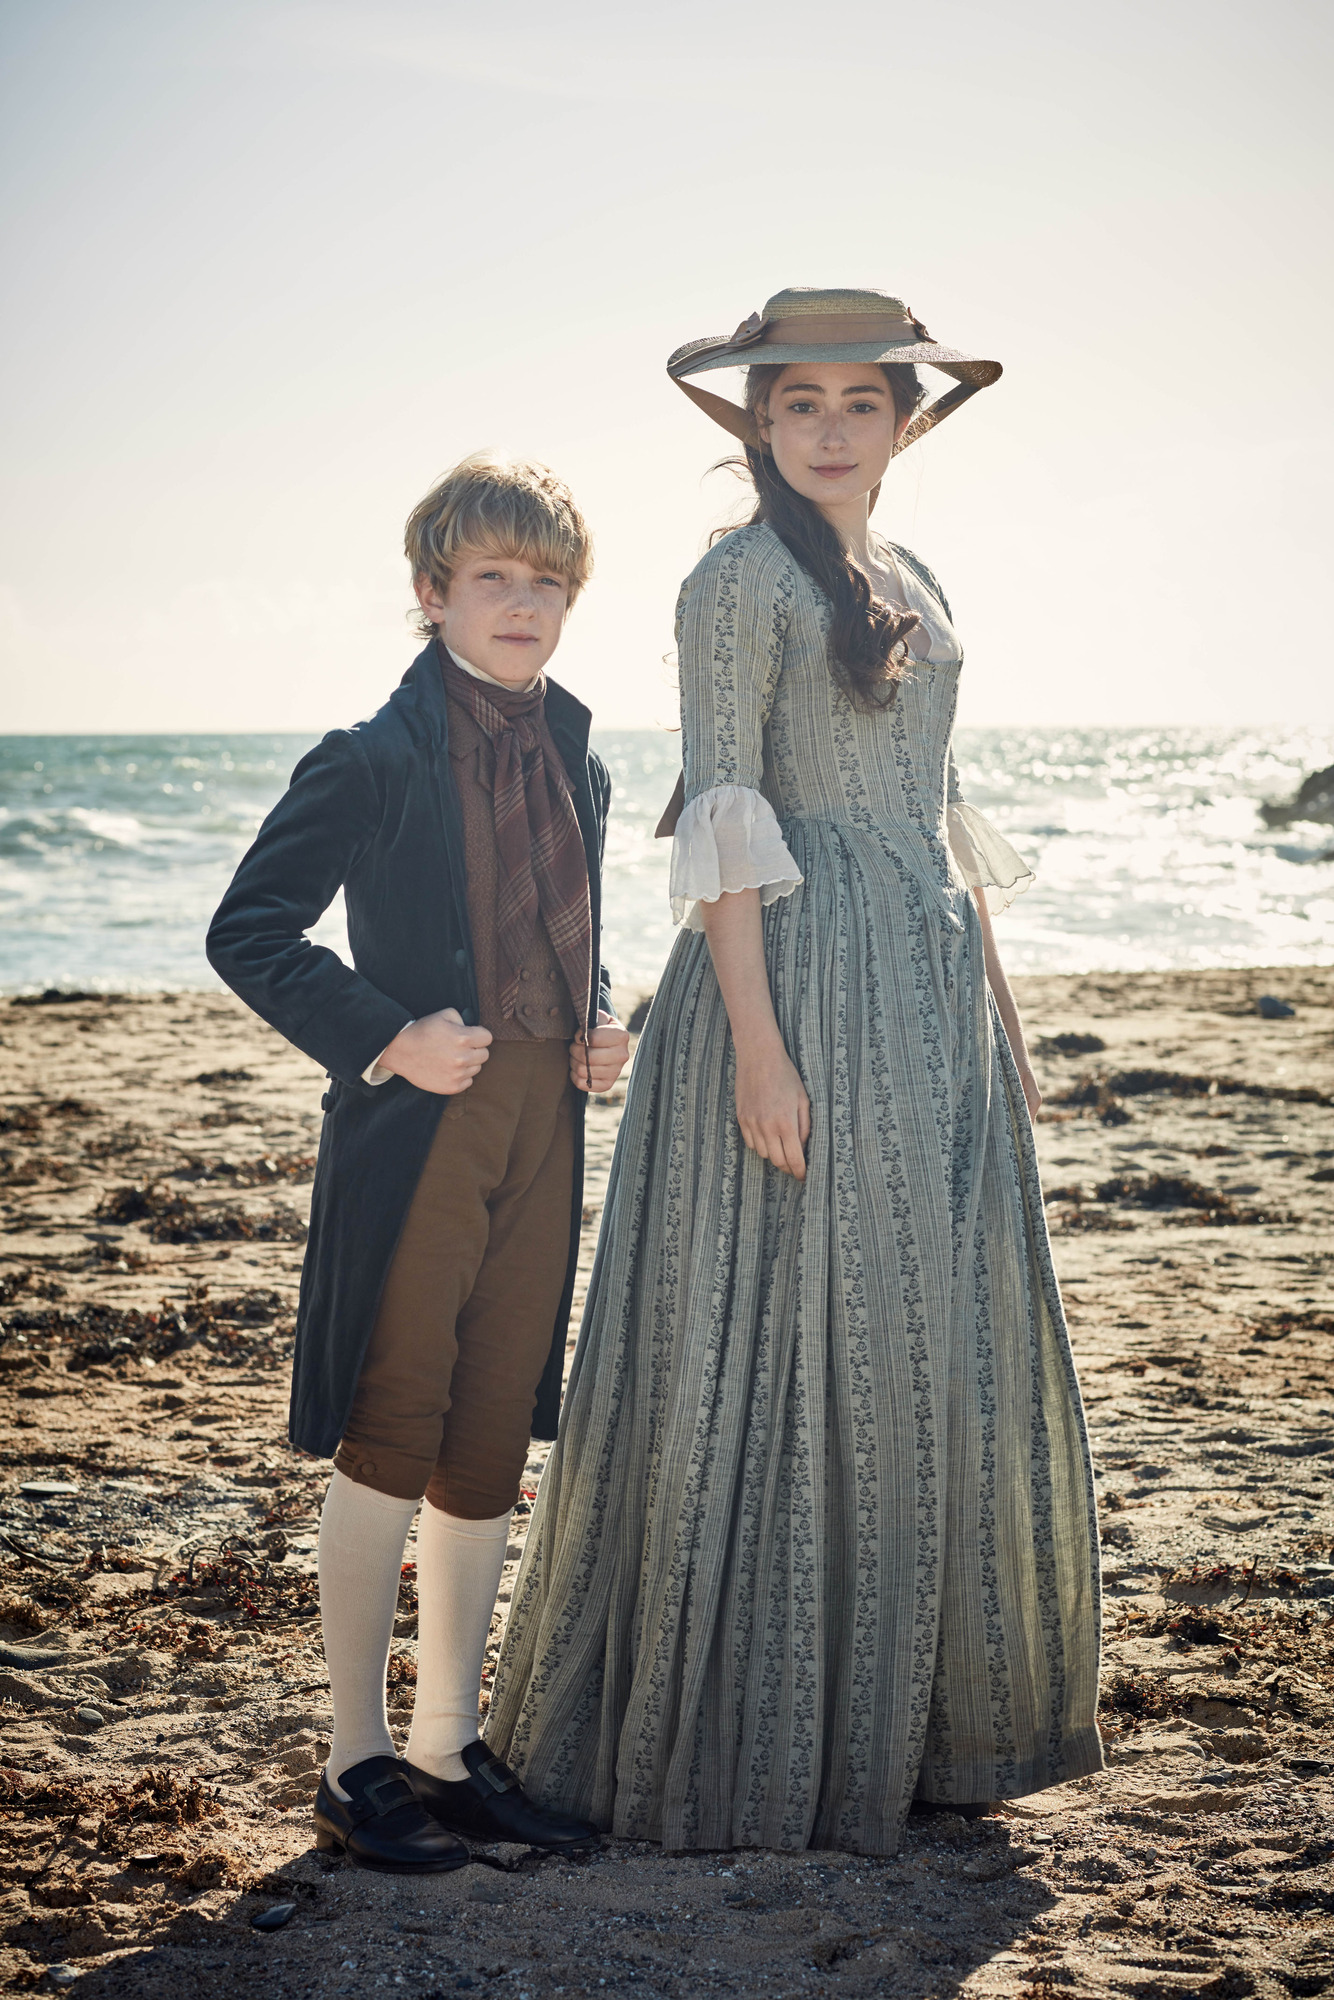 WARNING: Embargoed for publication until 00:00:01 on 06/06/2017 - Programme Name: Poldark S3 - TX: n/a - Episode: Poldark S3 - Episode 1 (No. 1) - Picture Shows: **STRICTLY EMBARGOED UNTIL TUESDAY 6TH JUNE** Harry Marcus (GEOFFREY CHARLES) , Morwenna Chynoweth (ELLISE CHAPPELL) - (C) Mammoth Screen - Photographer: Robert Viglasky